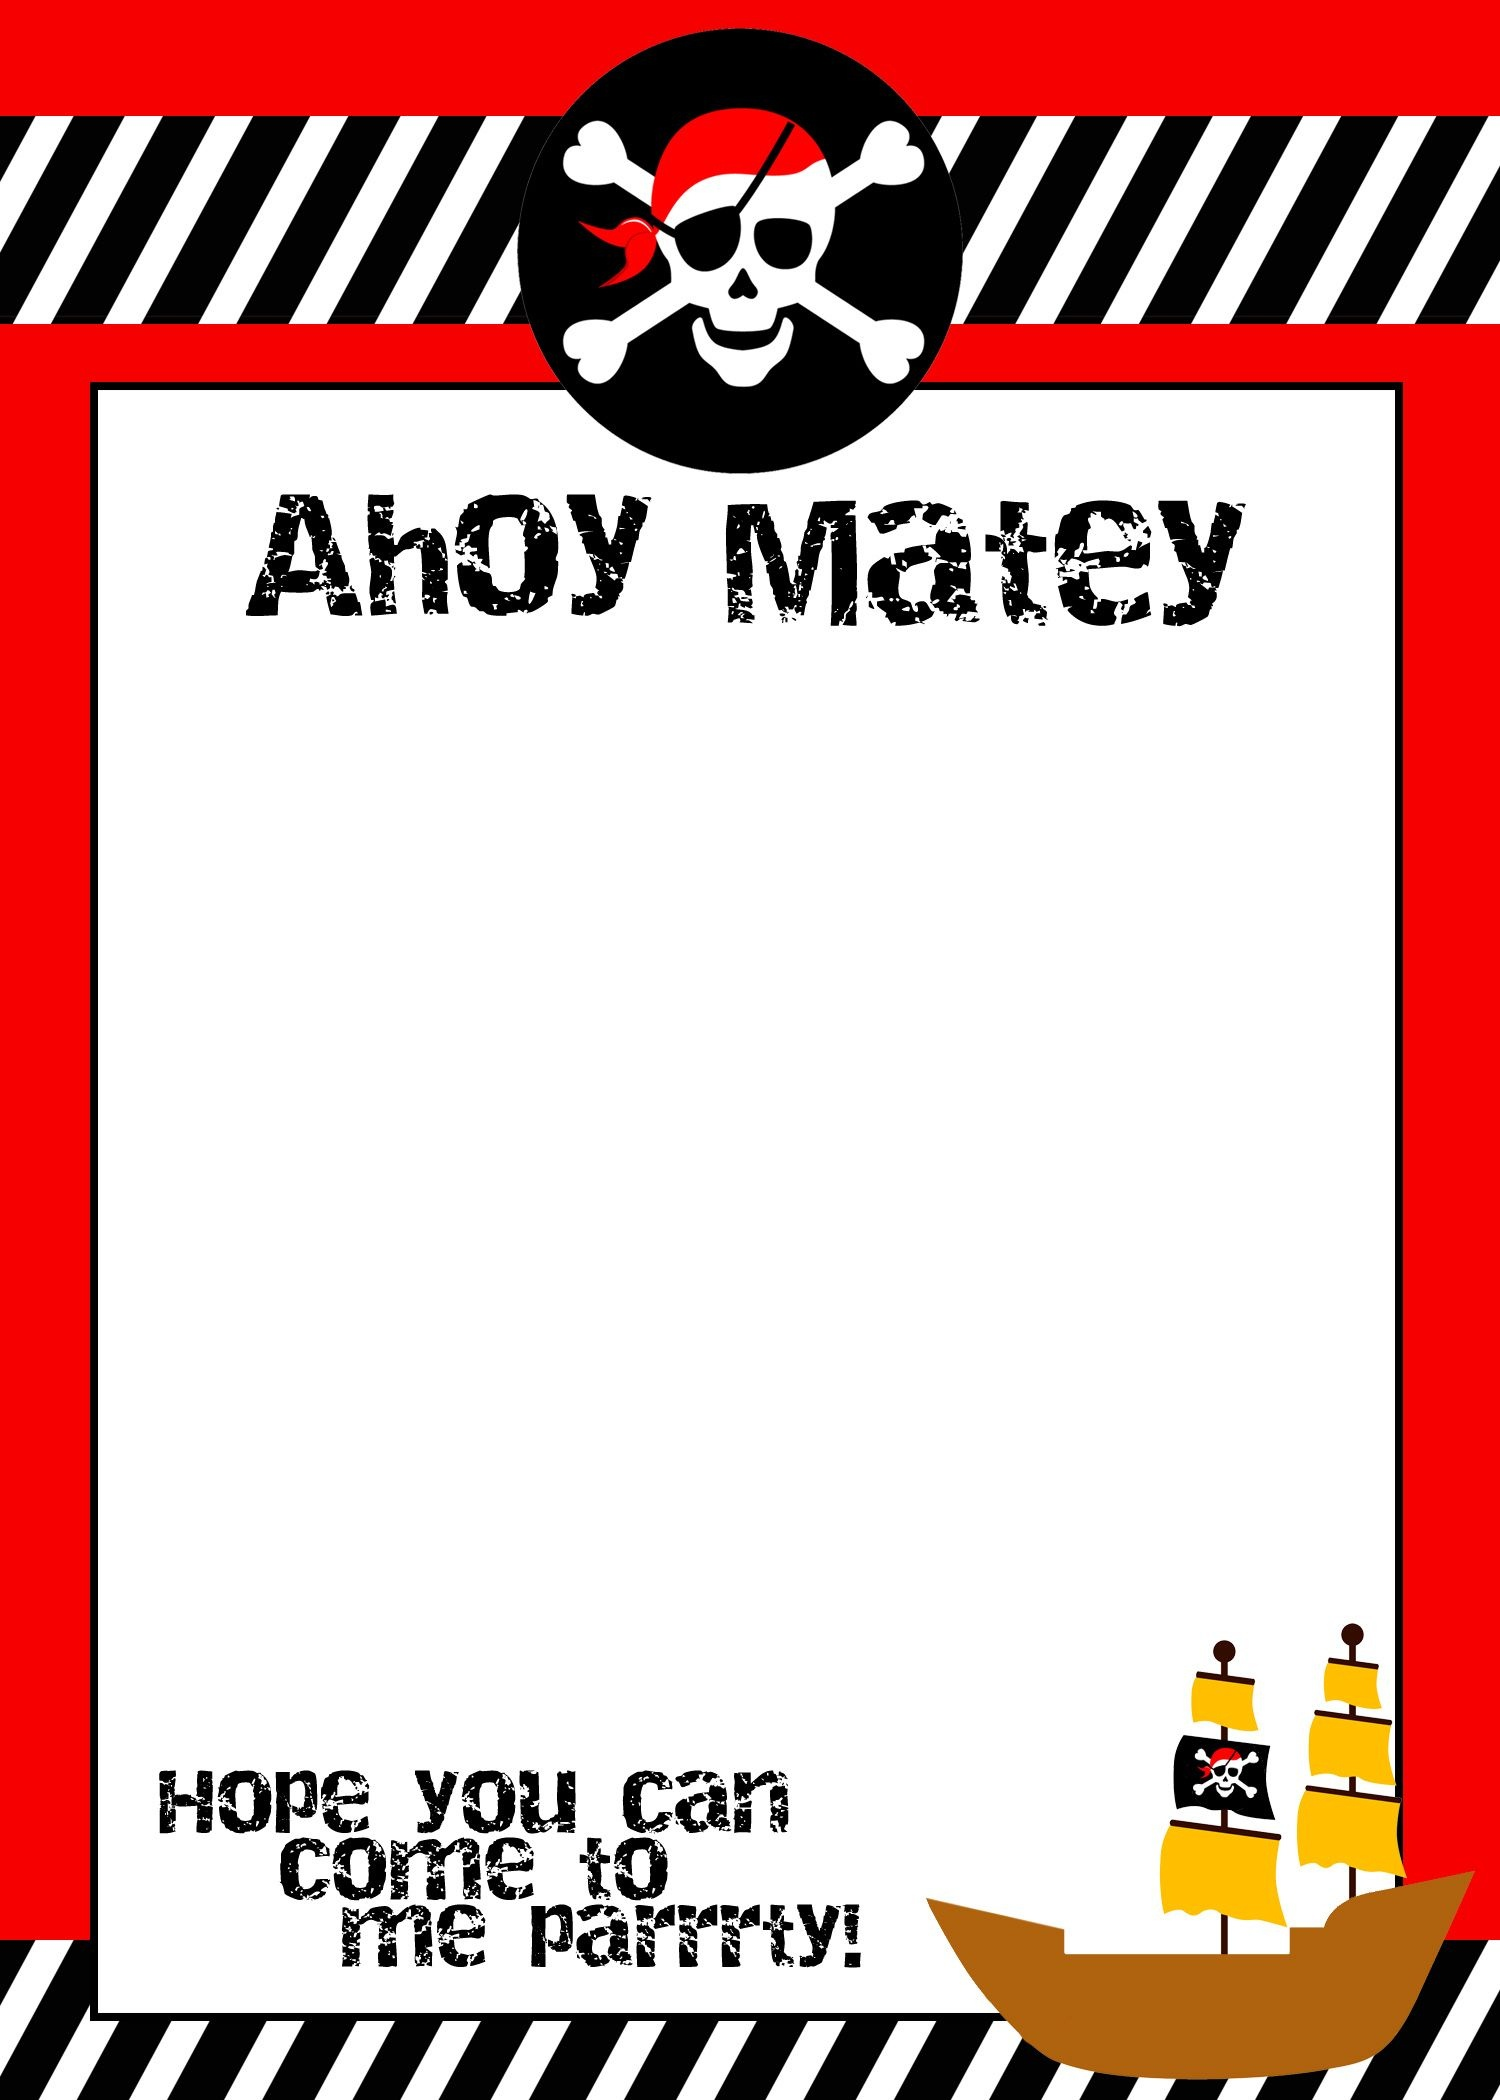 Pirate Birthday Party With Free Printables   Future Parties For My - Free Pirate Birthday Party Printables